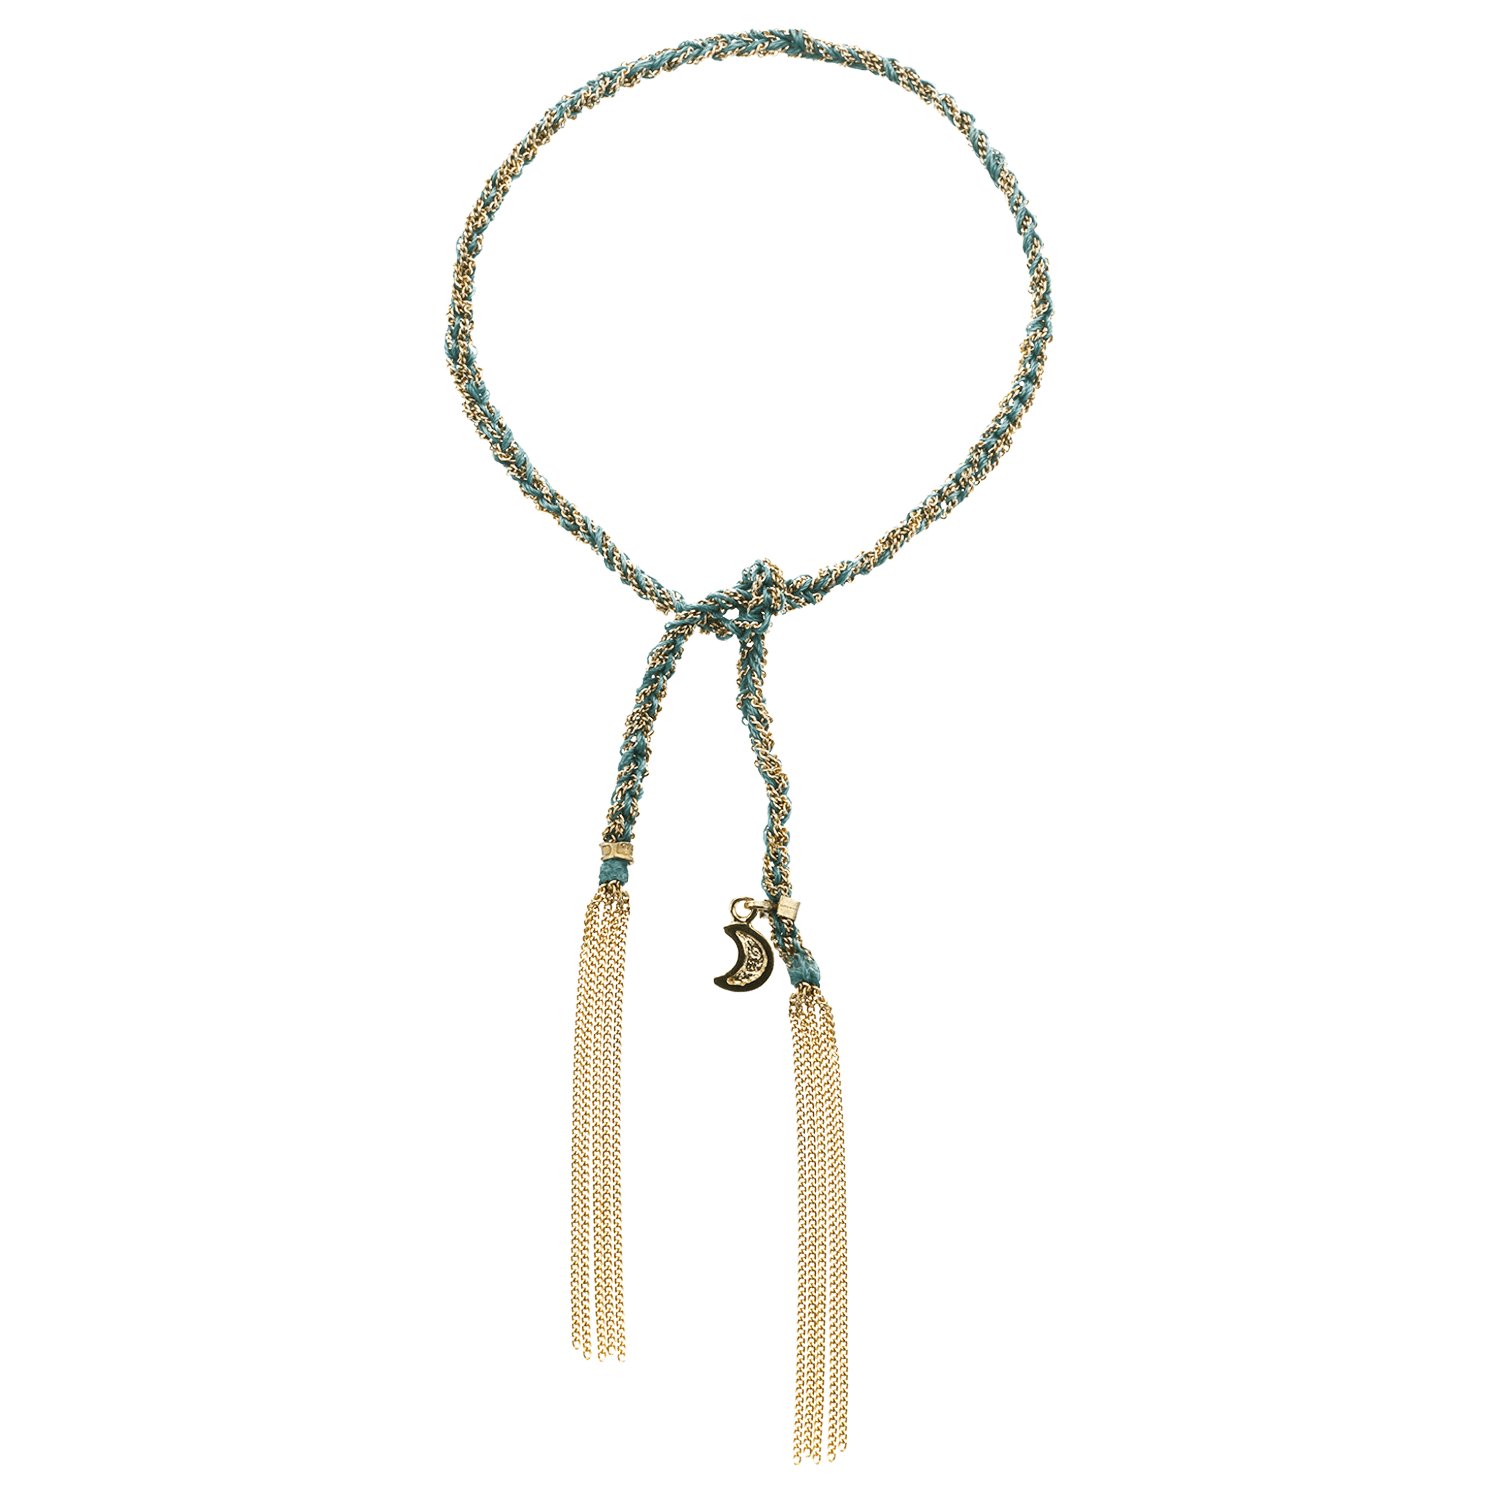 Carolina Bucci Lucky Bracelet with Wisdom Charm Yellow Gold